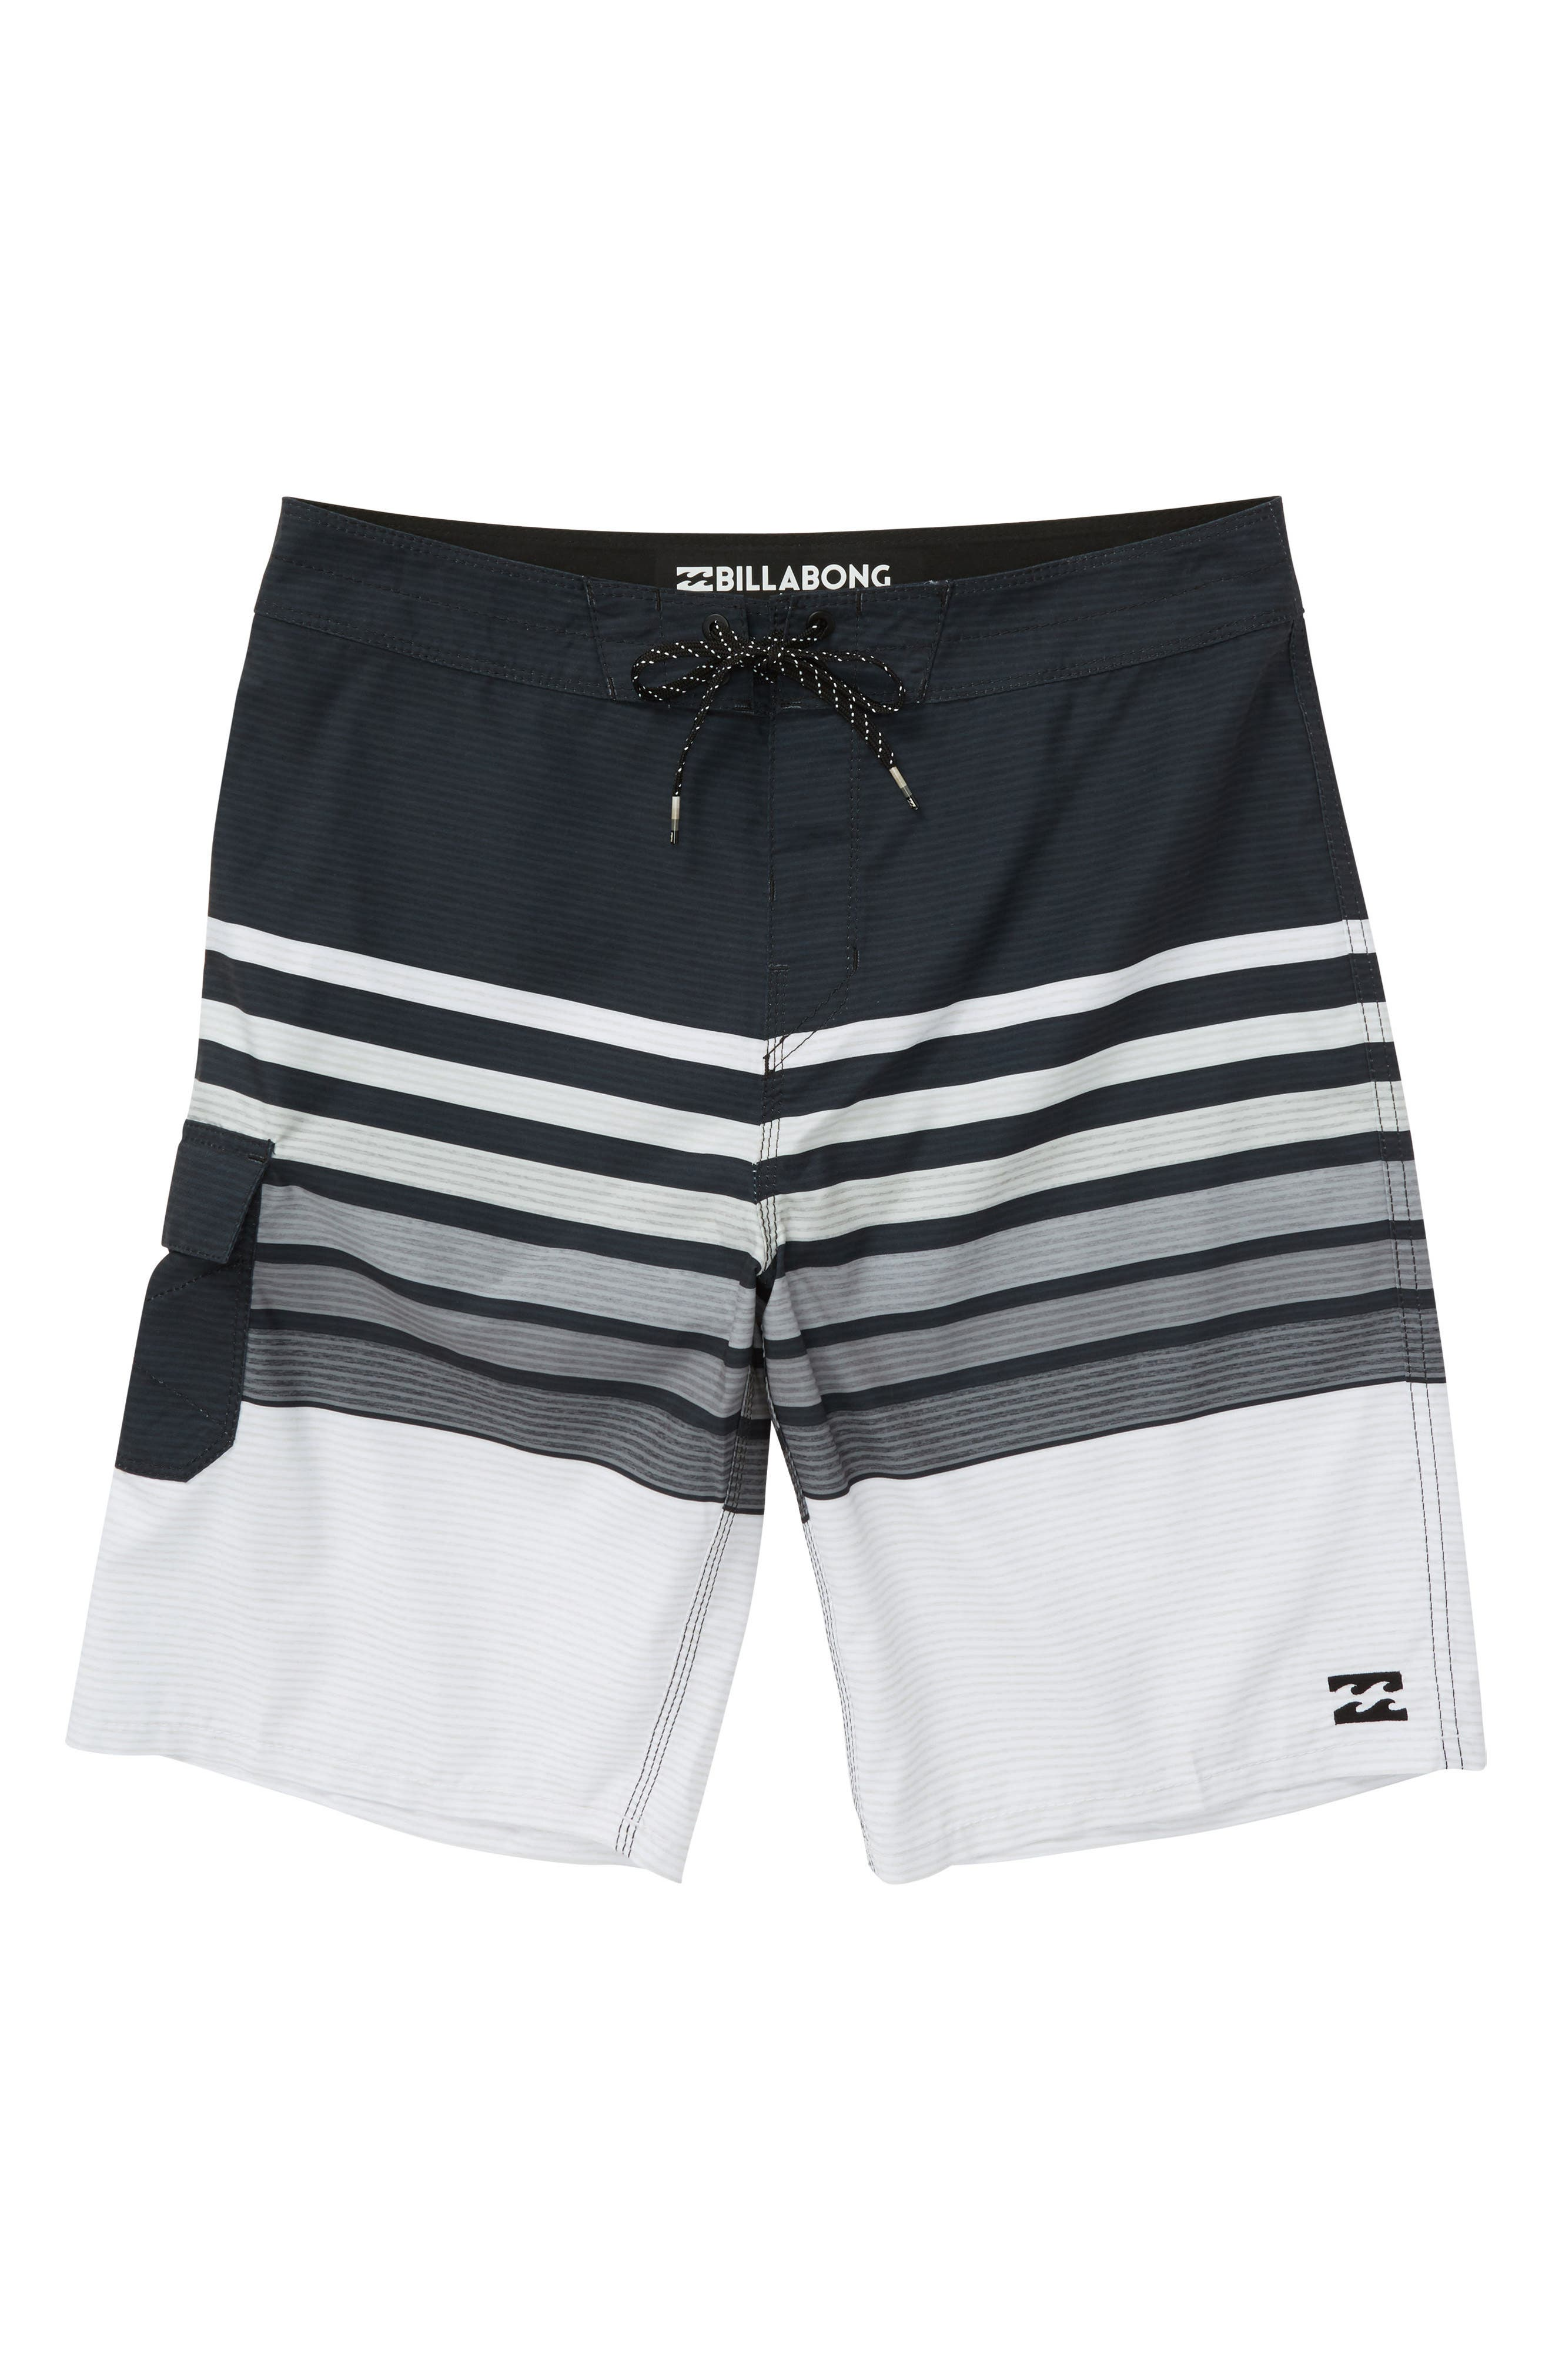 BILLABONG,                             All Day OG Stripe Board Shorts,                             Main thumbnail 1, color,                             001